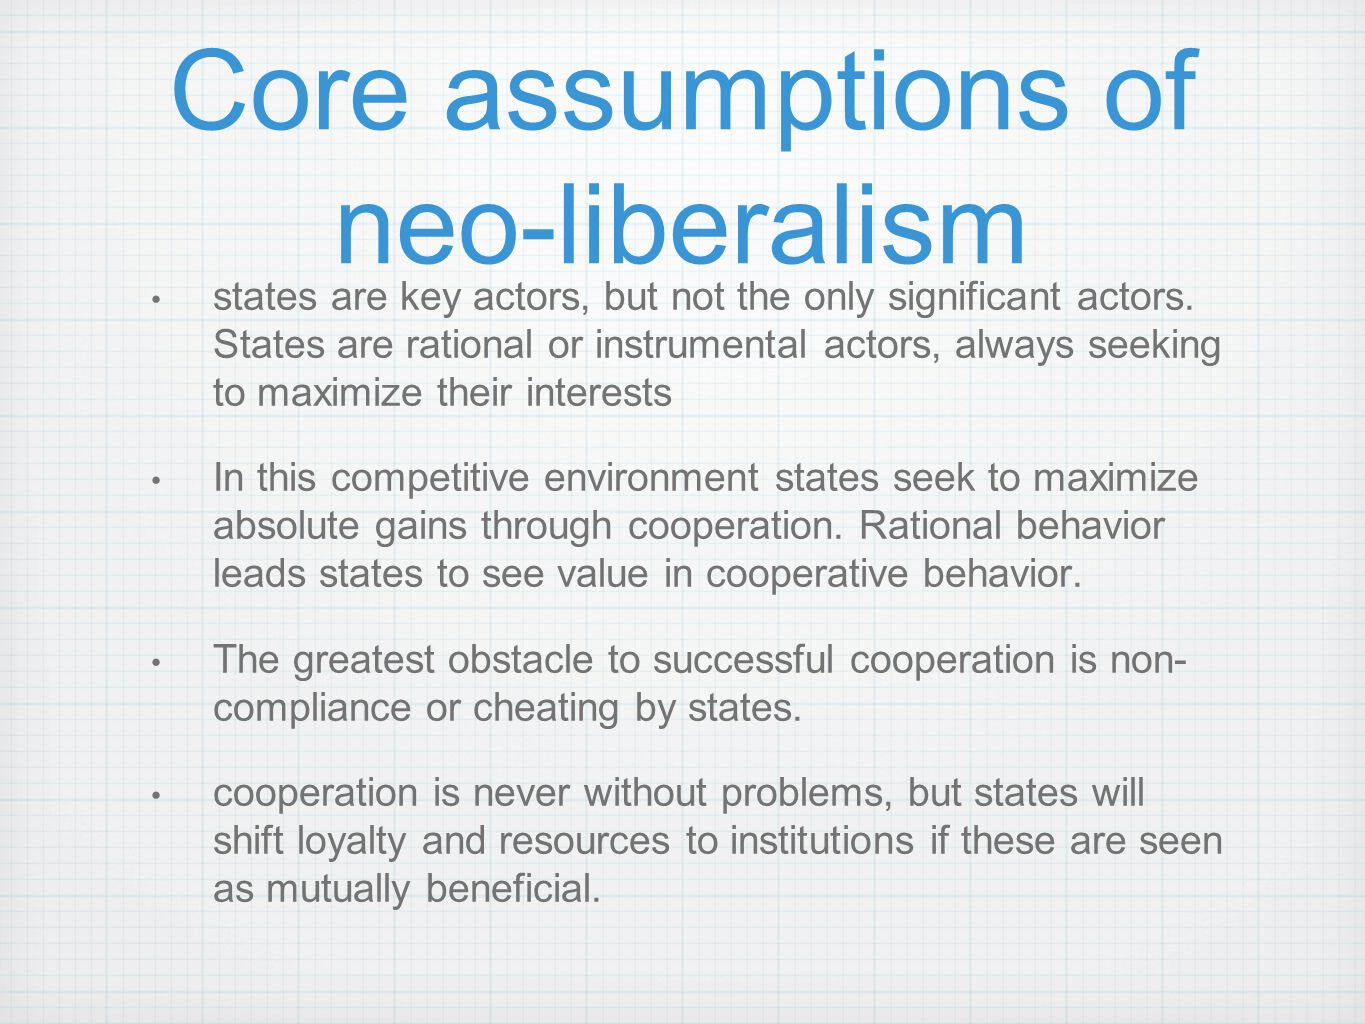 Core assumptions of neo-liberalism